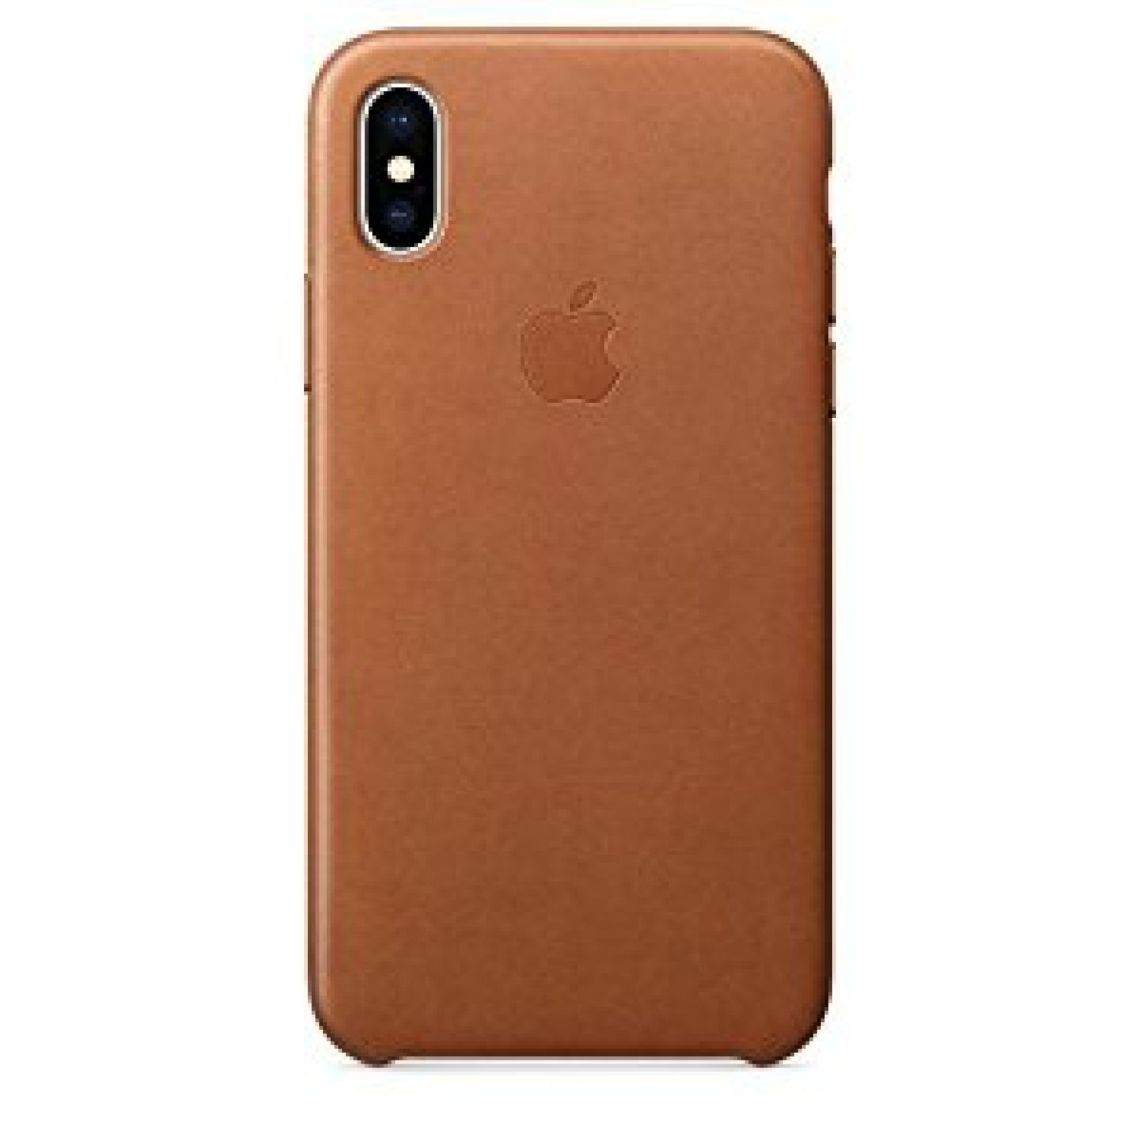 Amazon.com: Apple iPhone X Leather Case - Saddle Brown: Cell Phones & Accessories